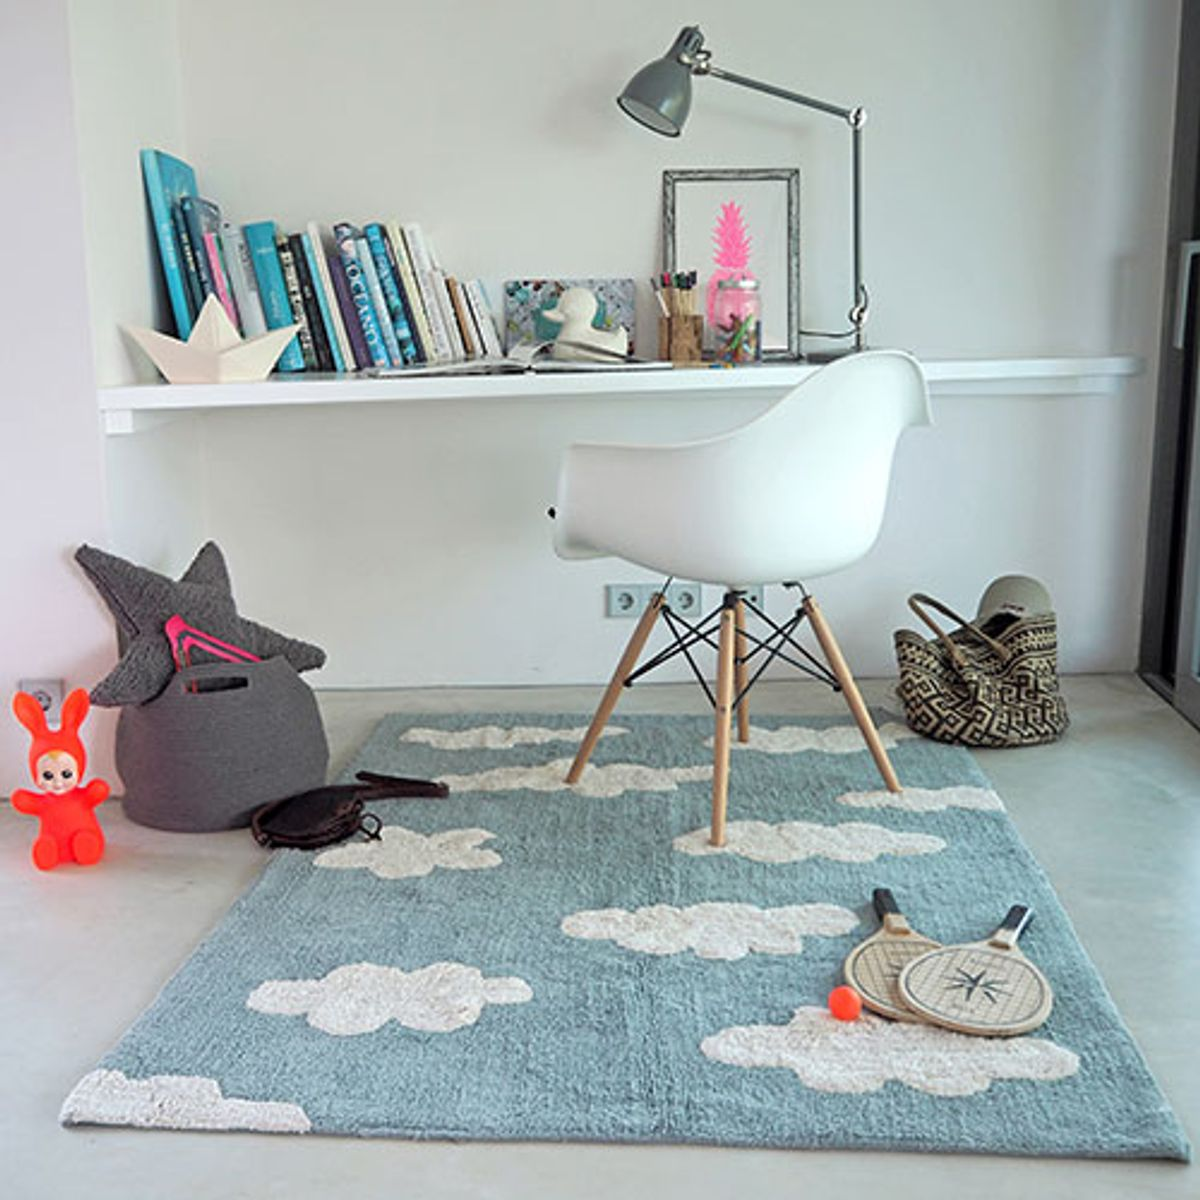 tapis enfant en coton motif nuage clouds lorena canals. Black Bedroom Furniture Sets. Home Design Ideas